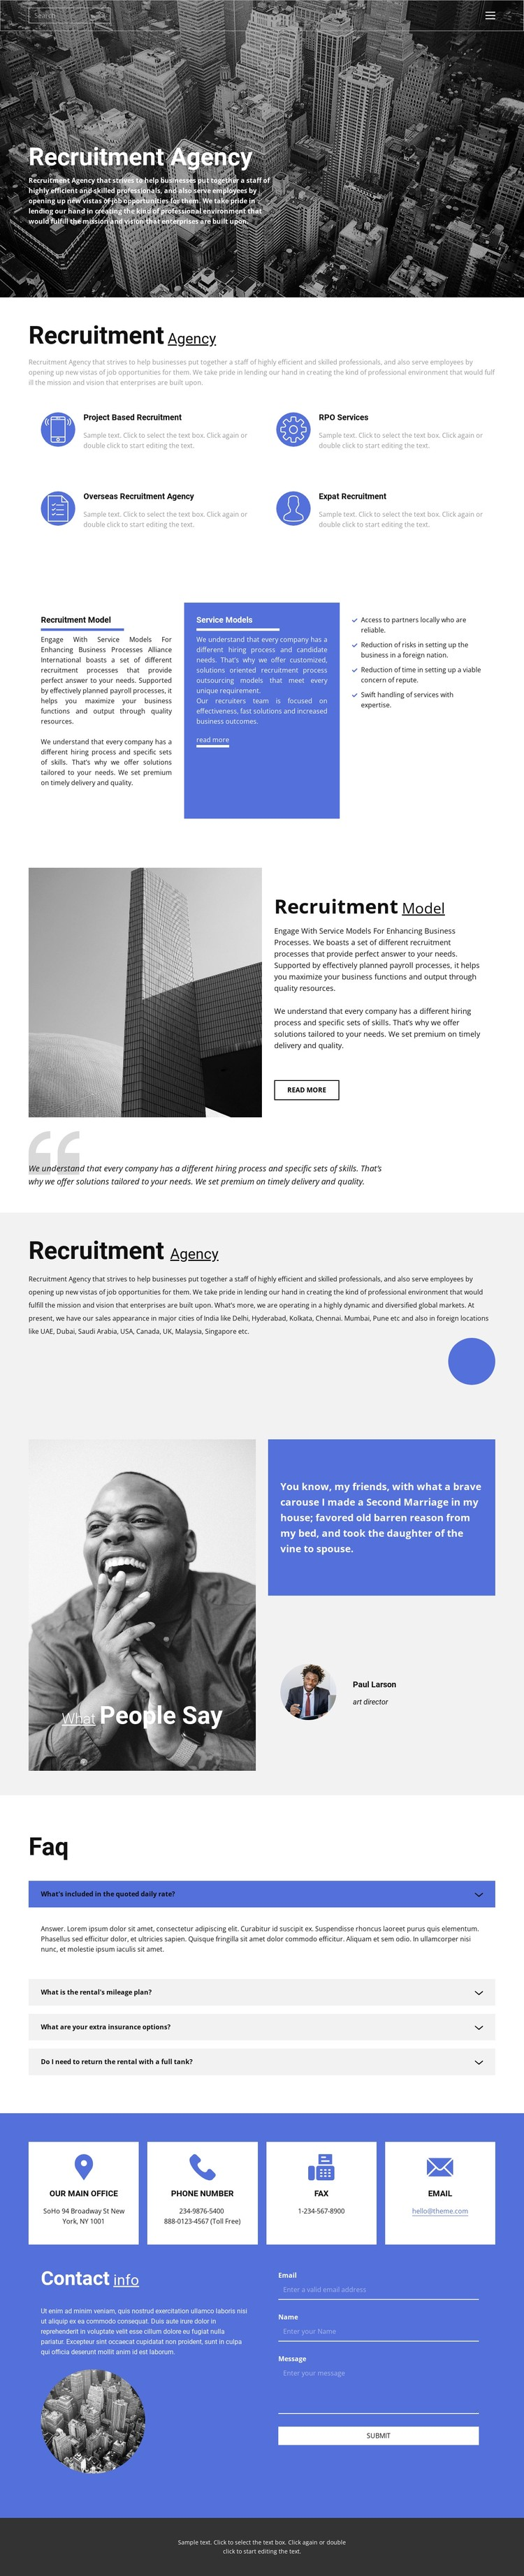 Recruiting agency with good experience CSS Template